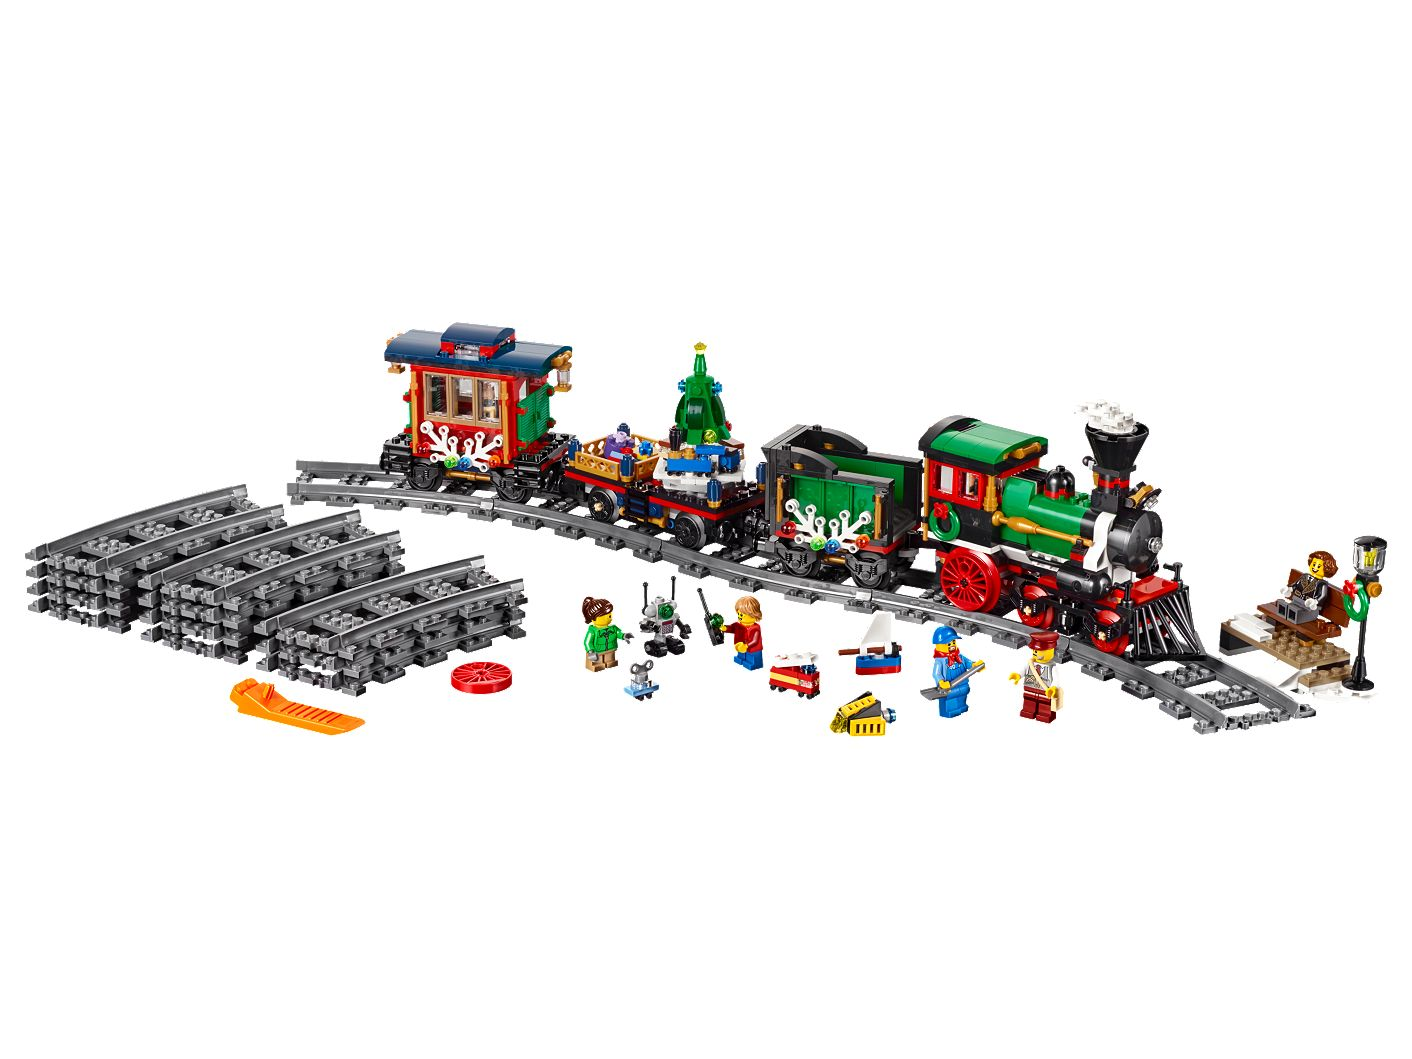 Wondrous Winter Holiday Train 10254 Creator Expert Buy Online At The Official Lego Shop Gb Machost Co Dining Chair Design Ideas Machostcouk